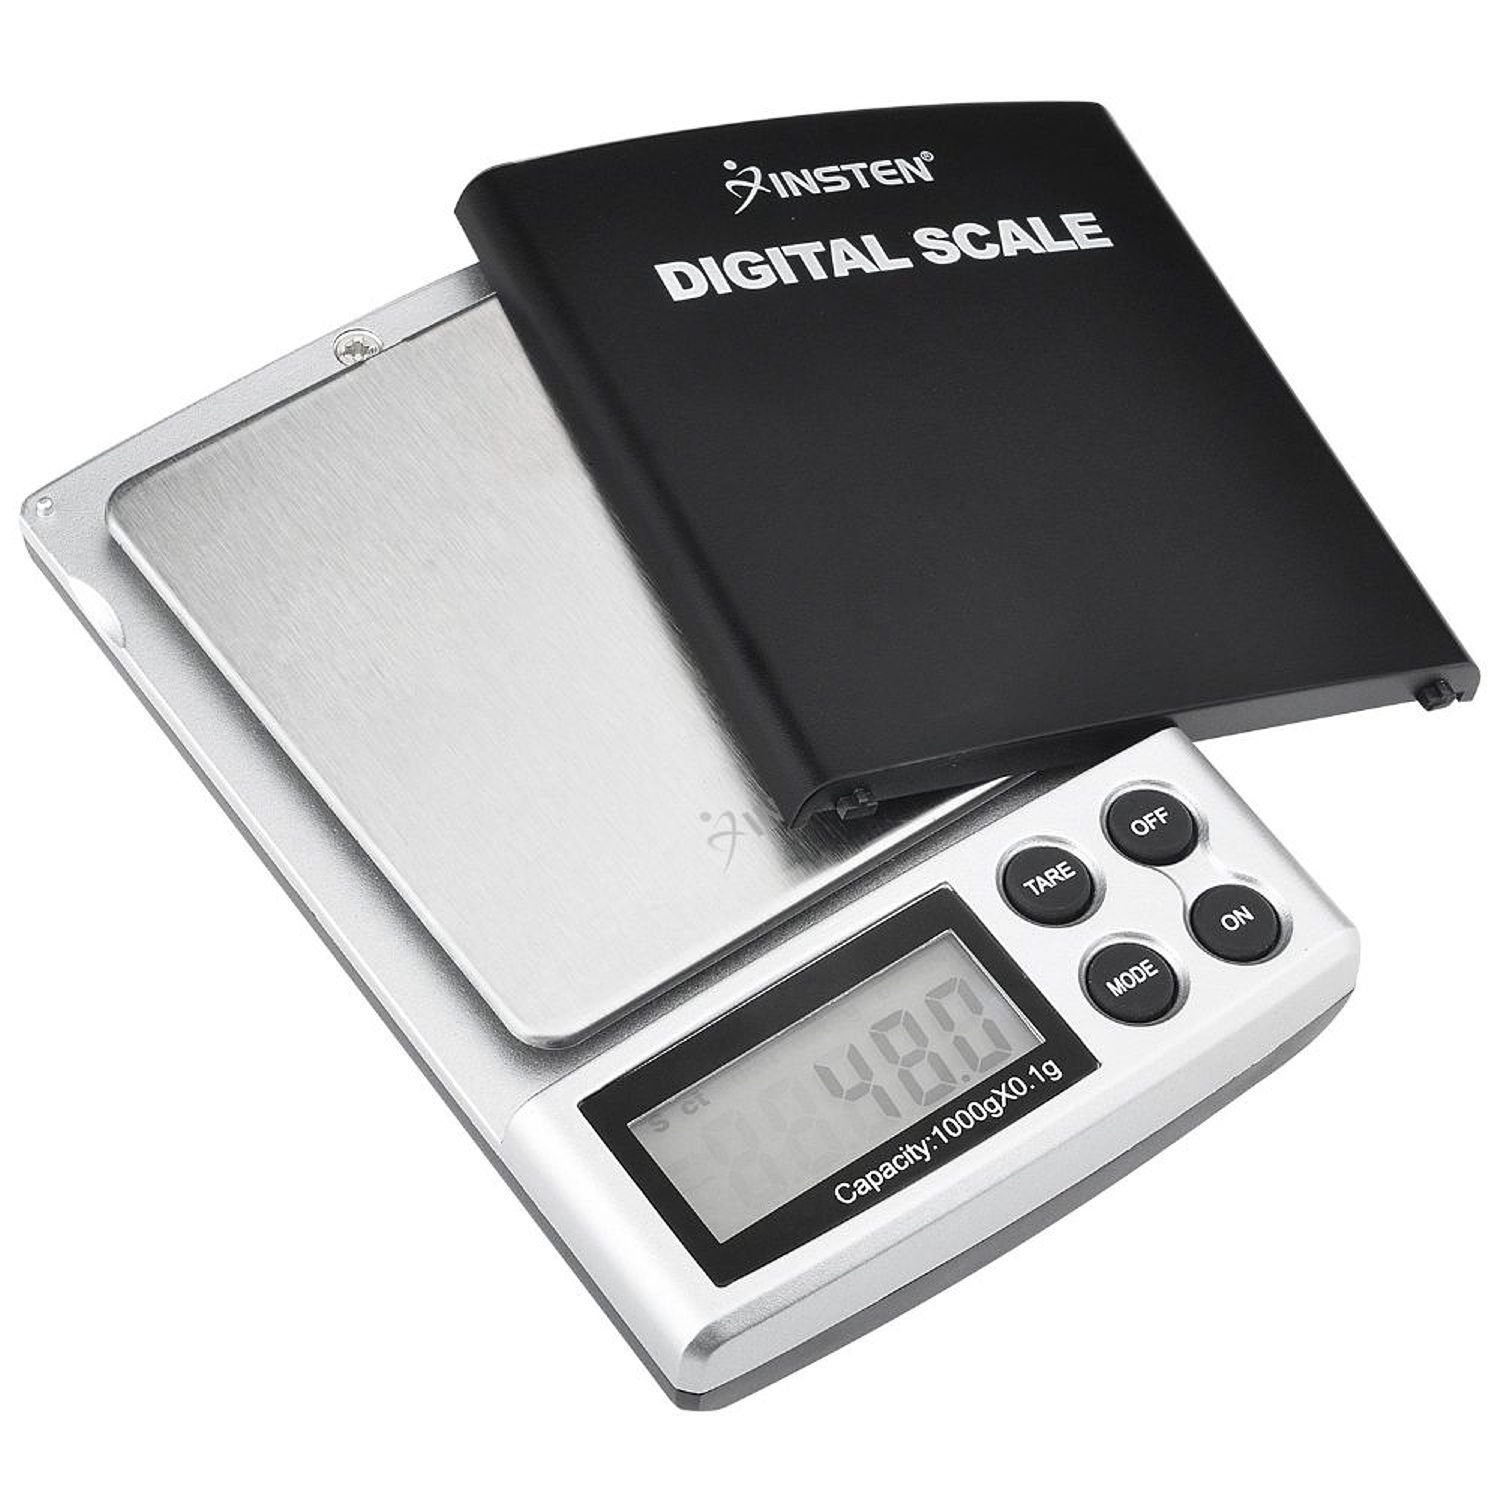 Insten digital scale for kitchen jewelry pocket sized refined accuracy detail up to 0 1g 0g to 1000g stainless steel scale with backlight lcd display